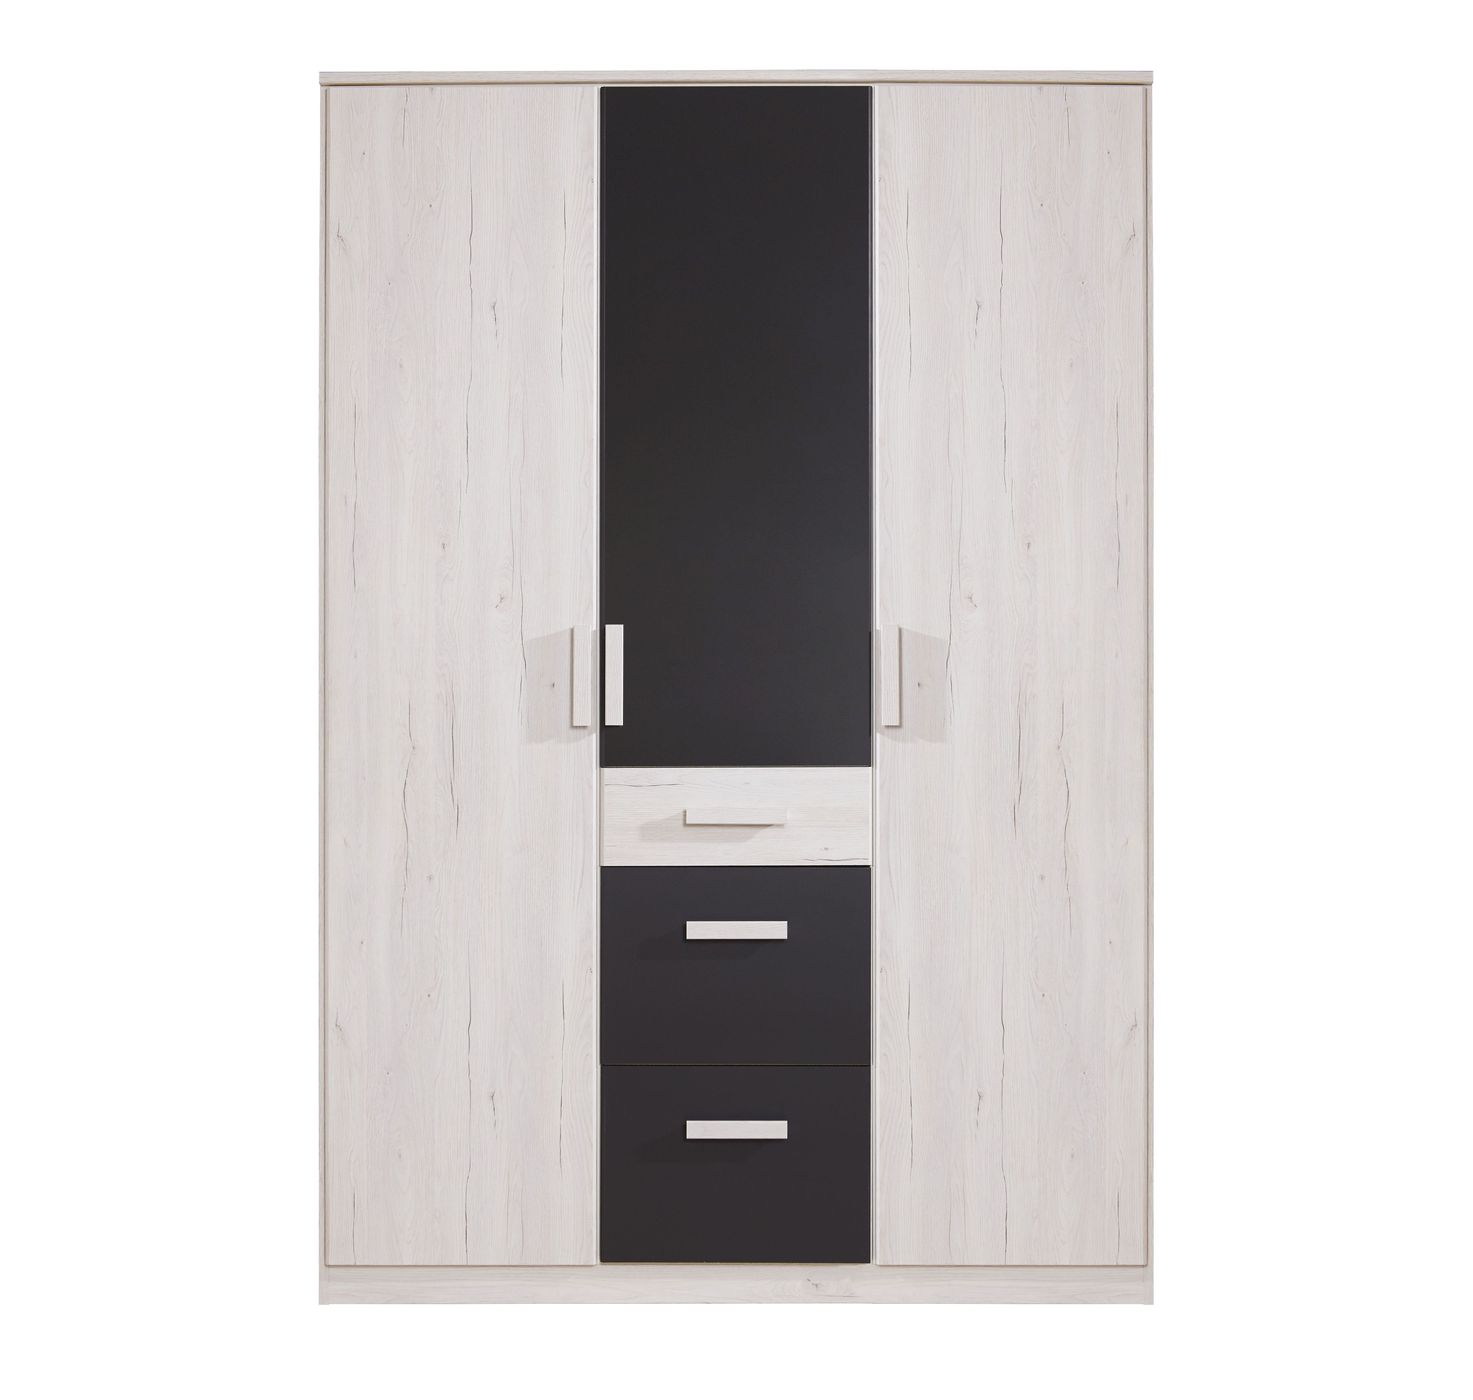 kleiderschrank mit schubladen dreht ren wei eiche dekor. Black Bedroom Furniture Sets. Home Design Ideas